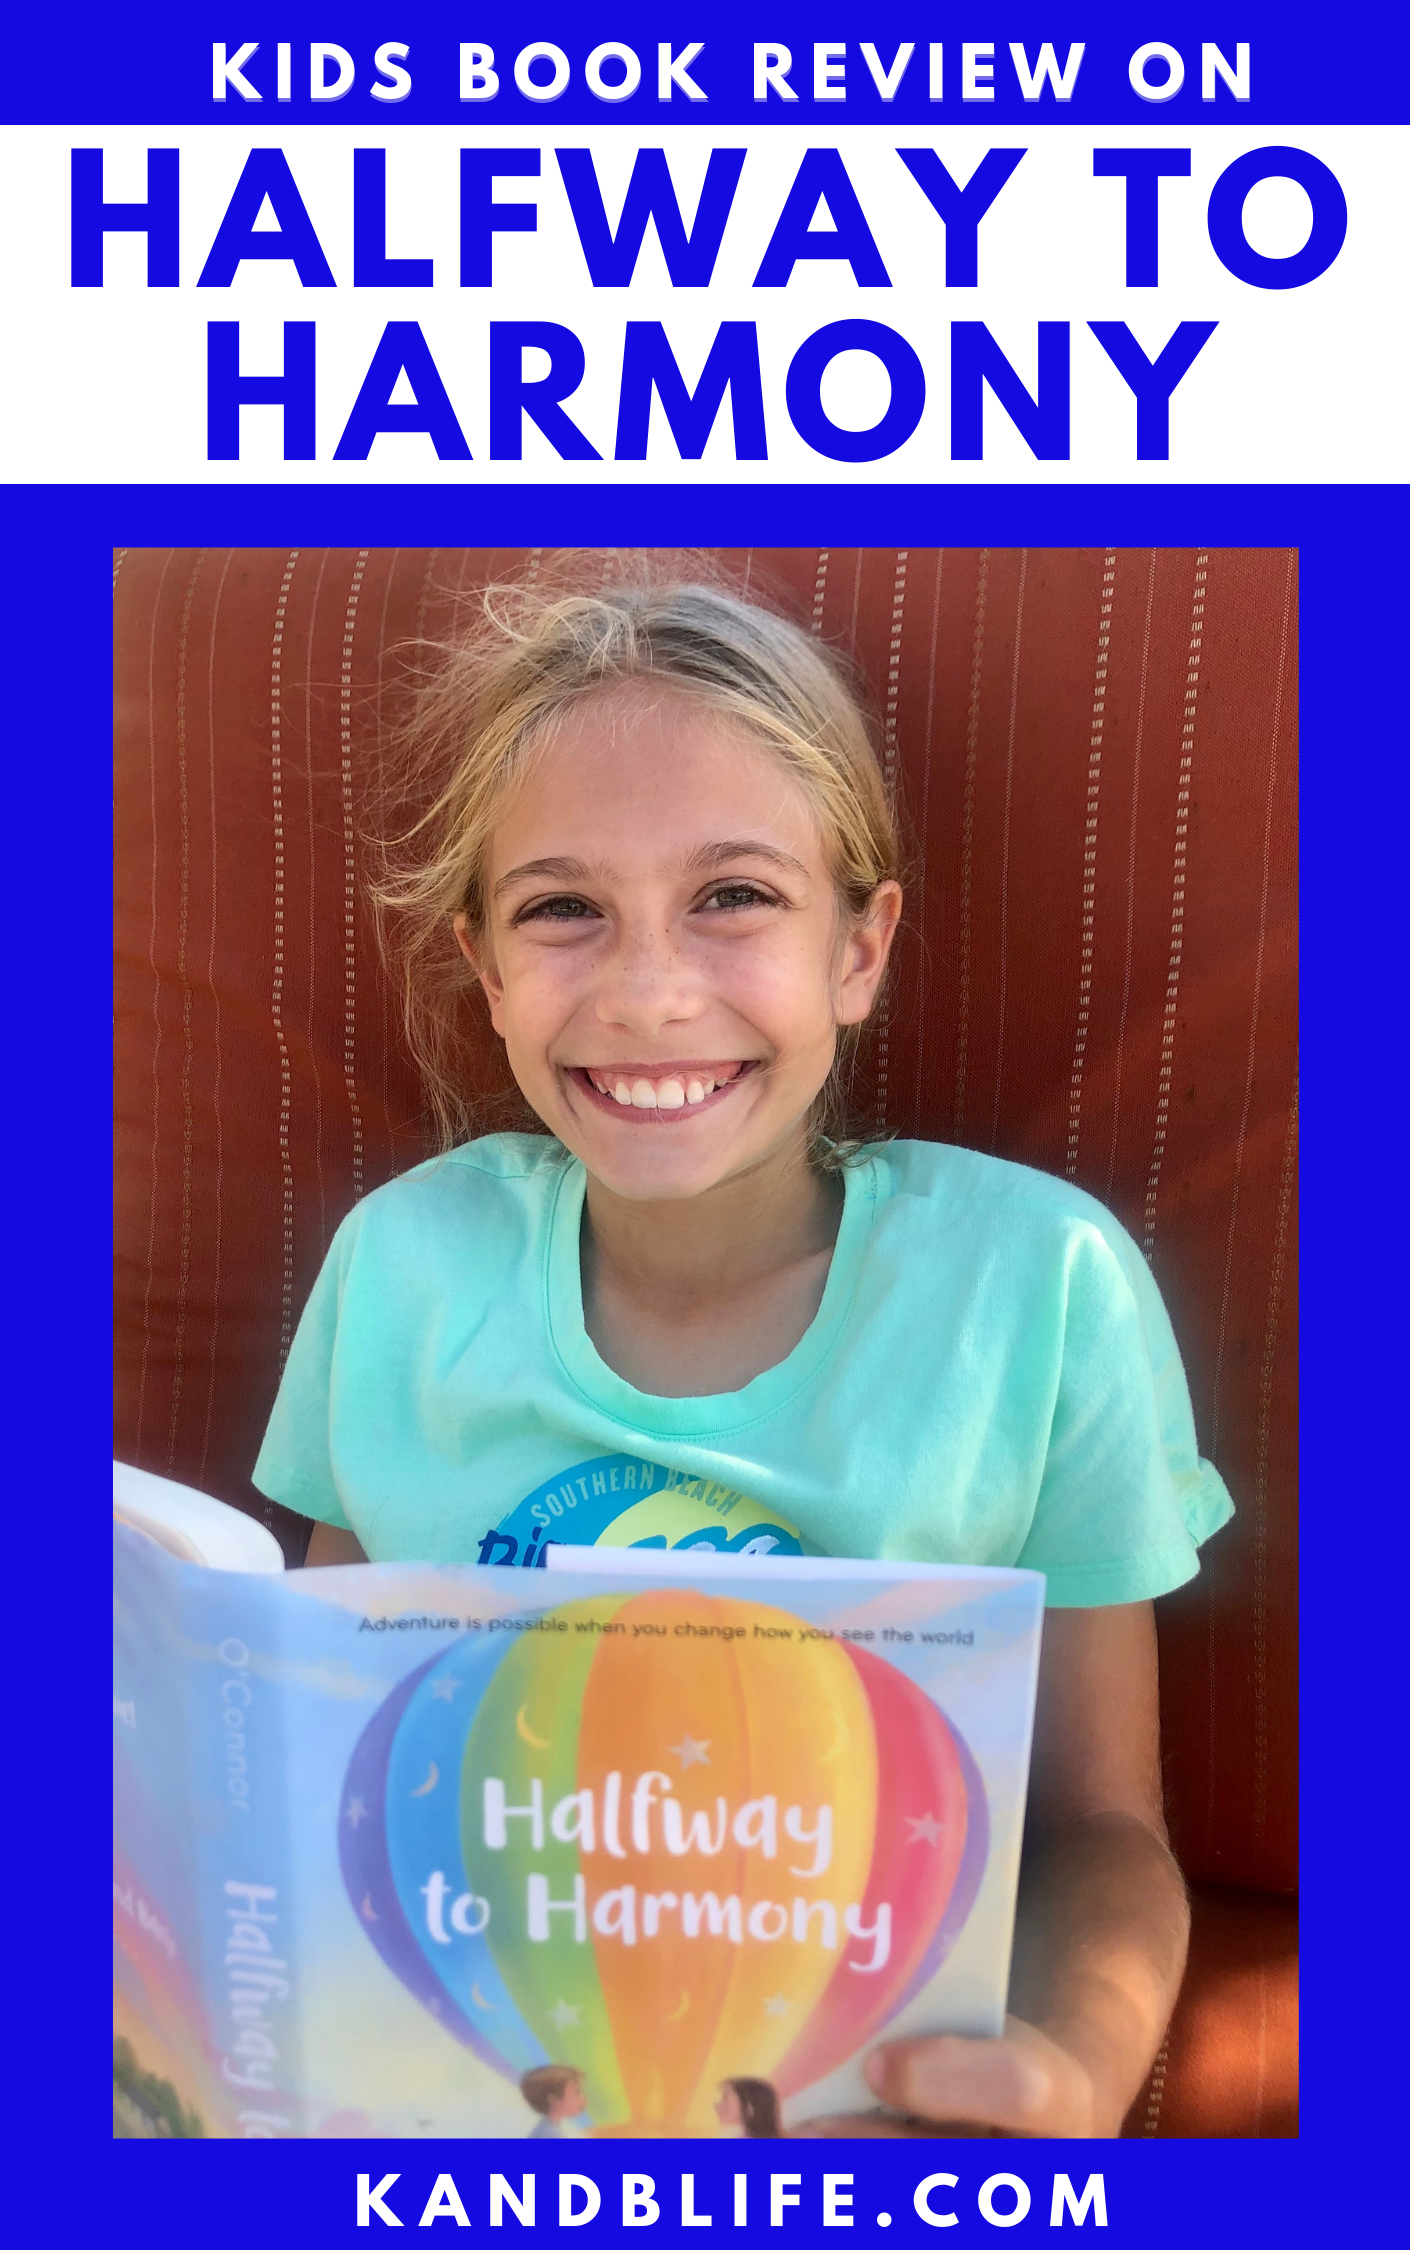 Kids Book Review cover for Halfway to Harmony